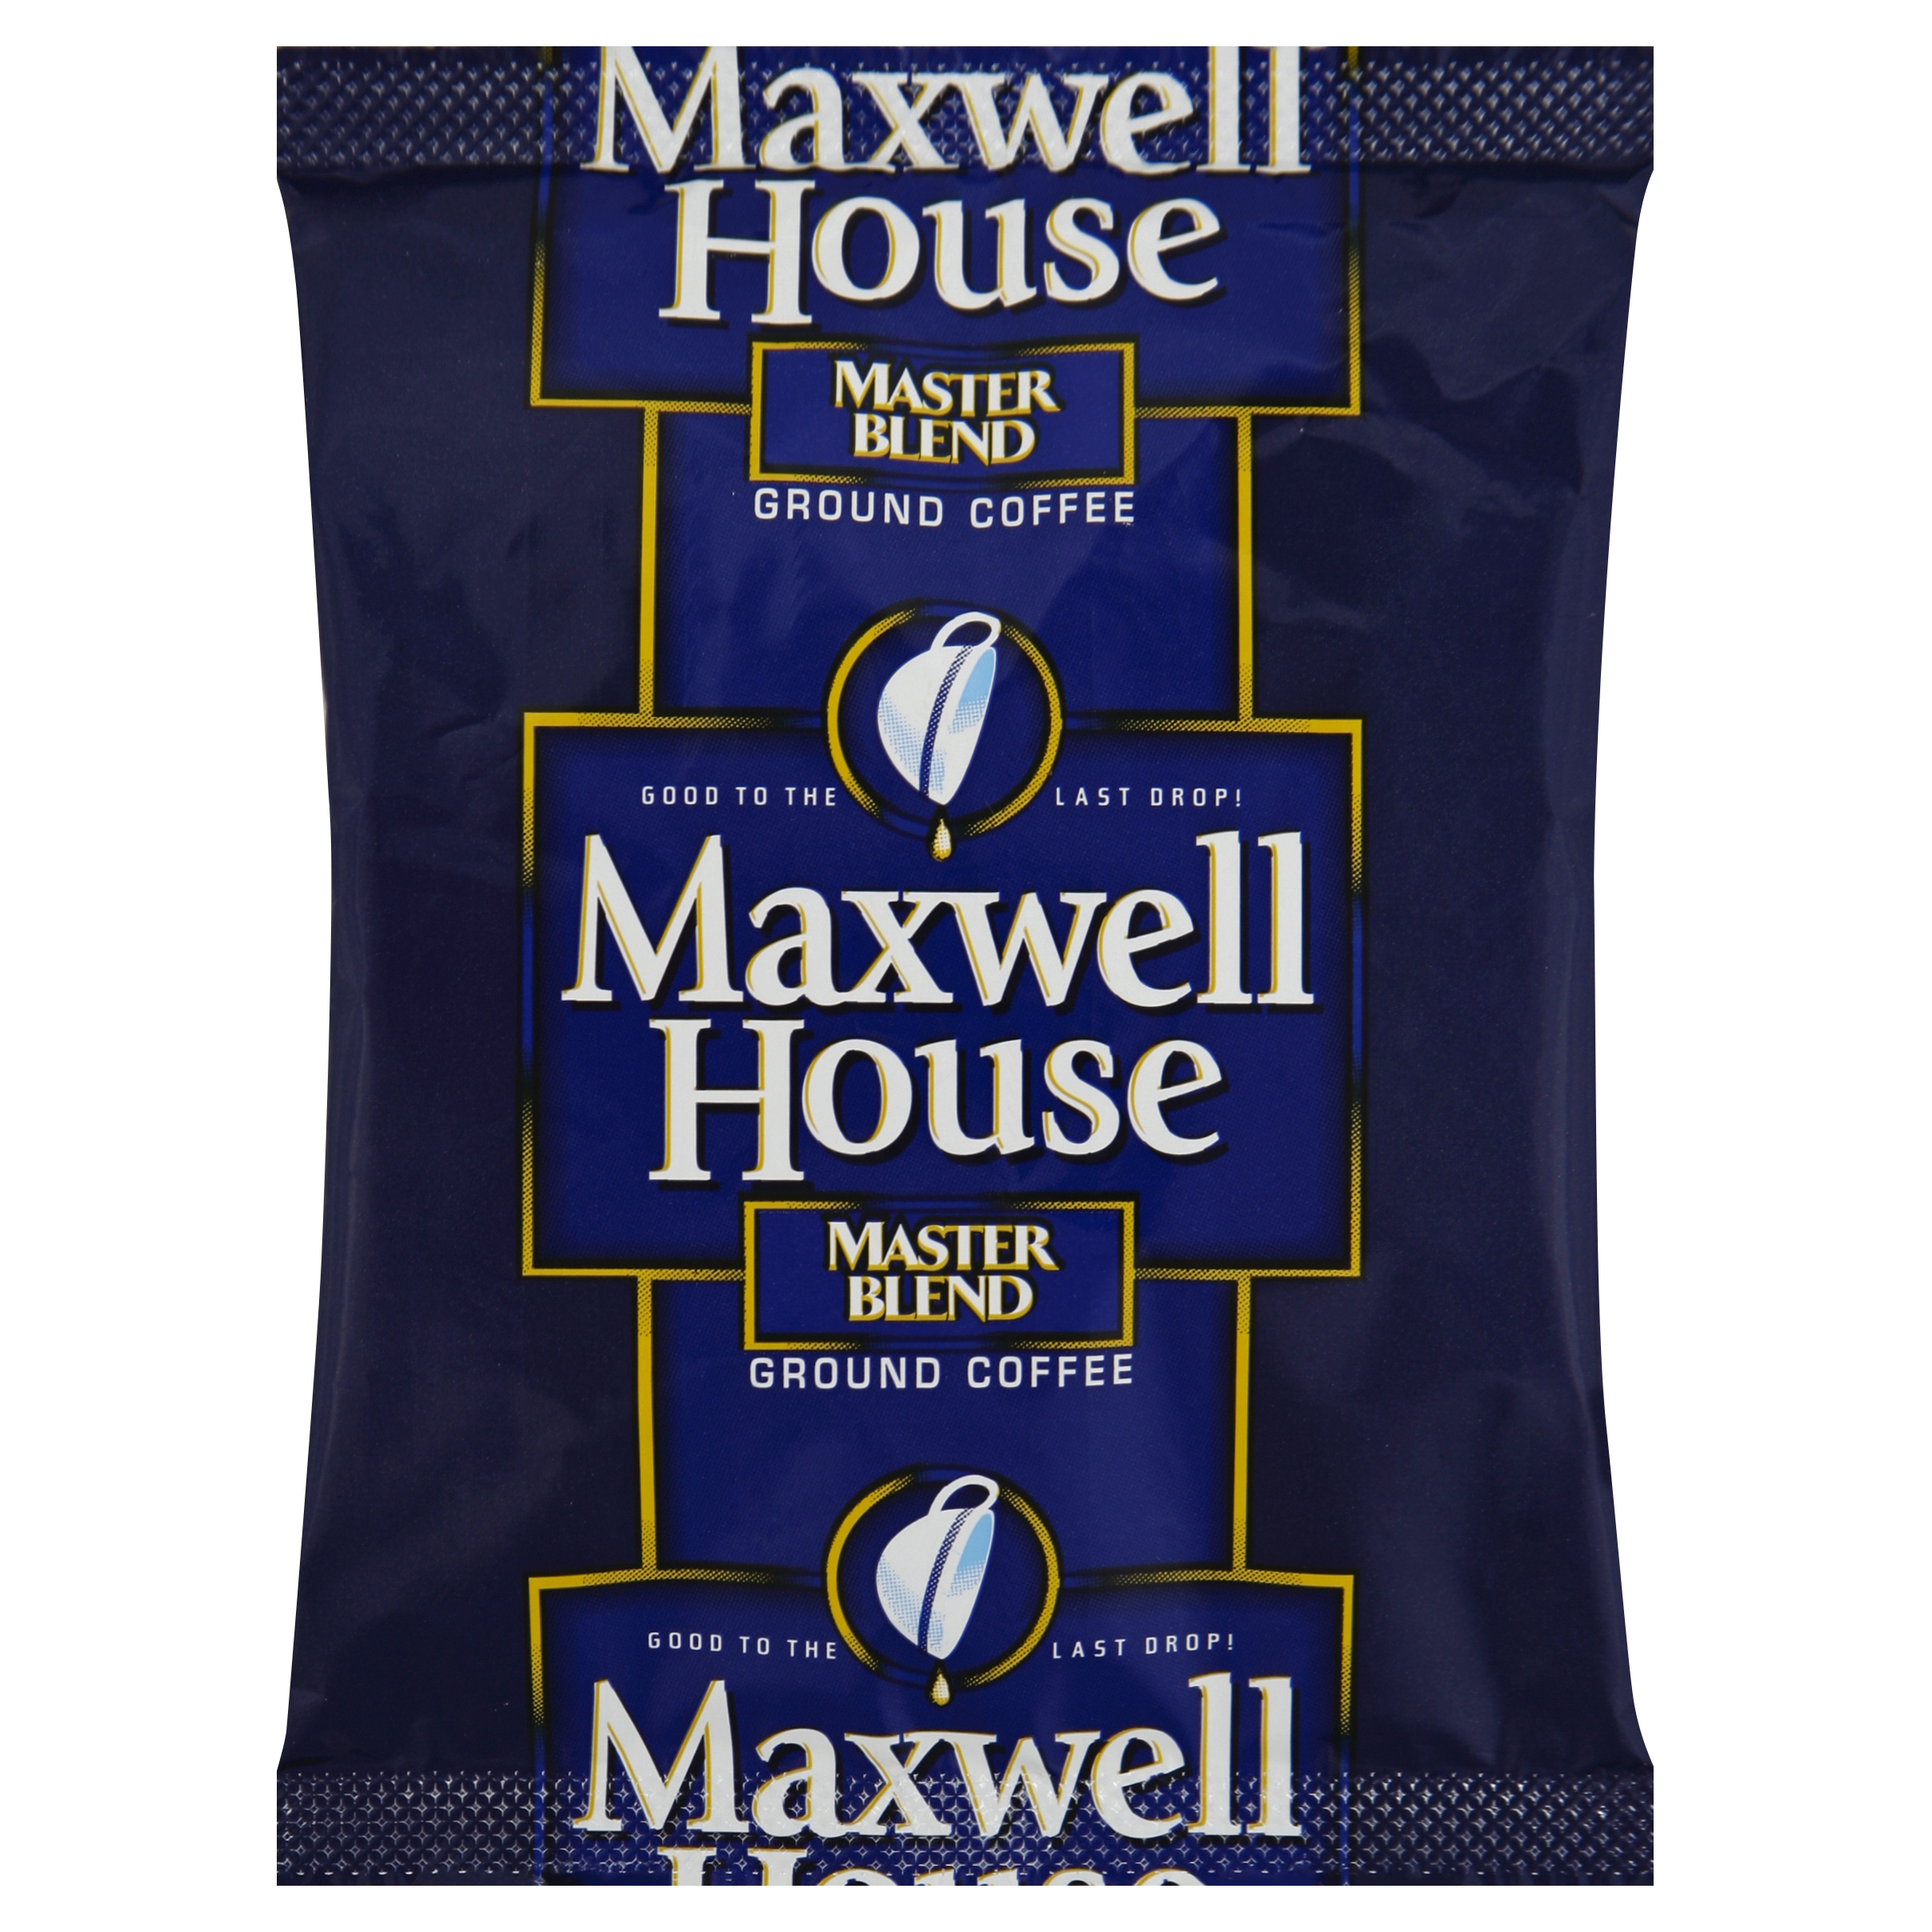 Maxwell House Master Blend Ground Coffee Packages, 1.1 oz (Pack of 42)